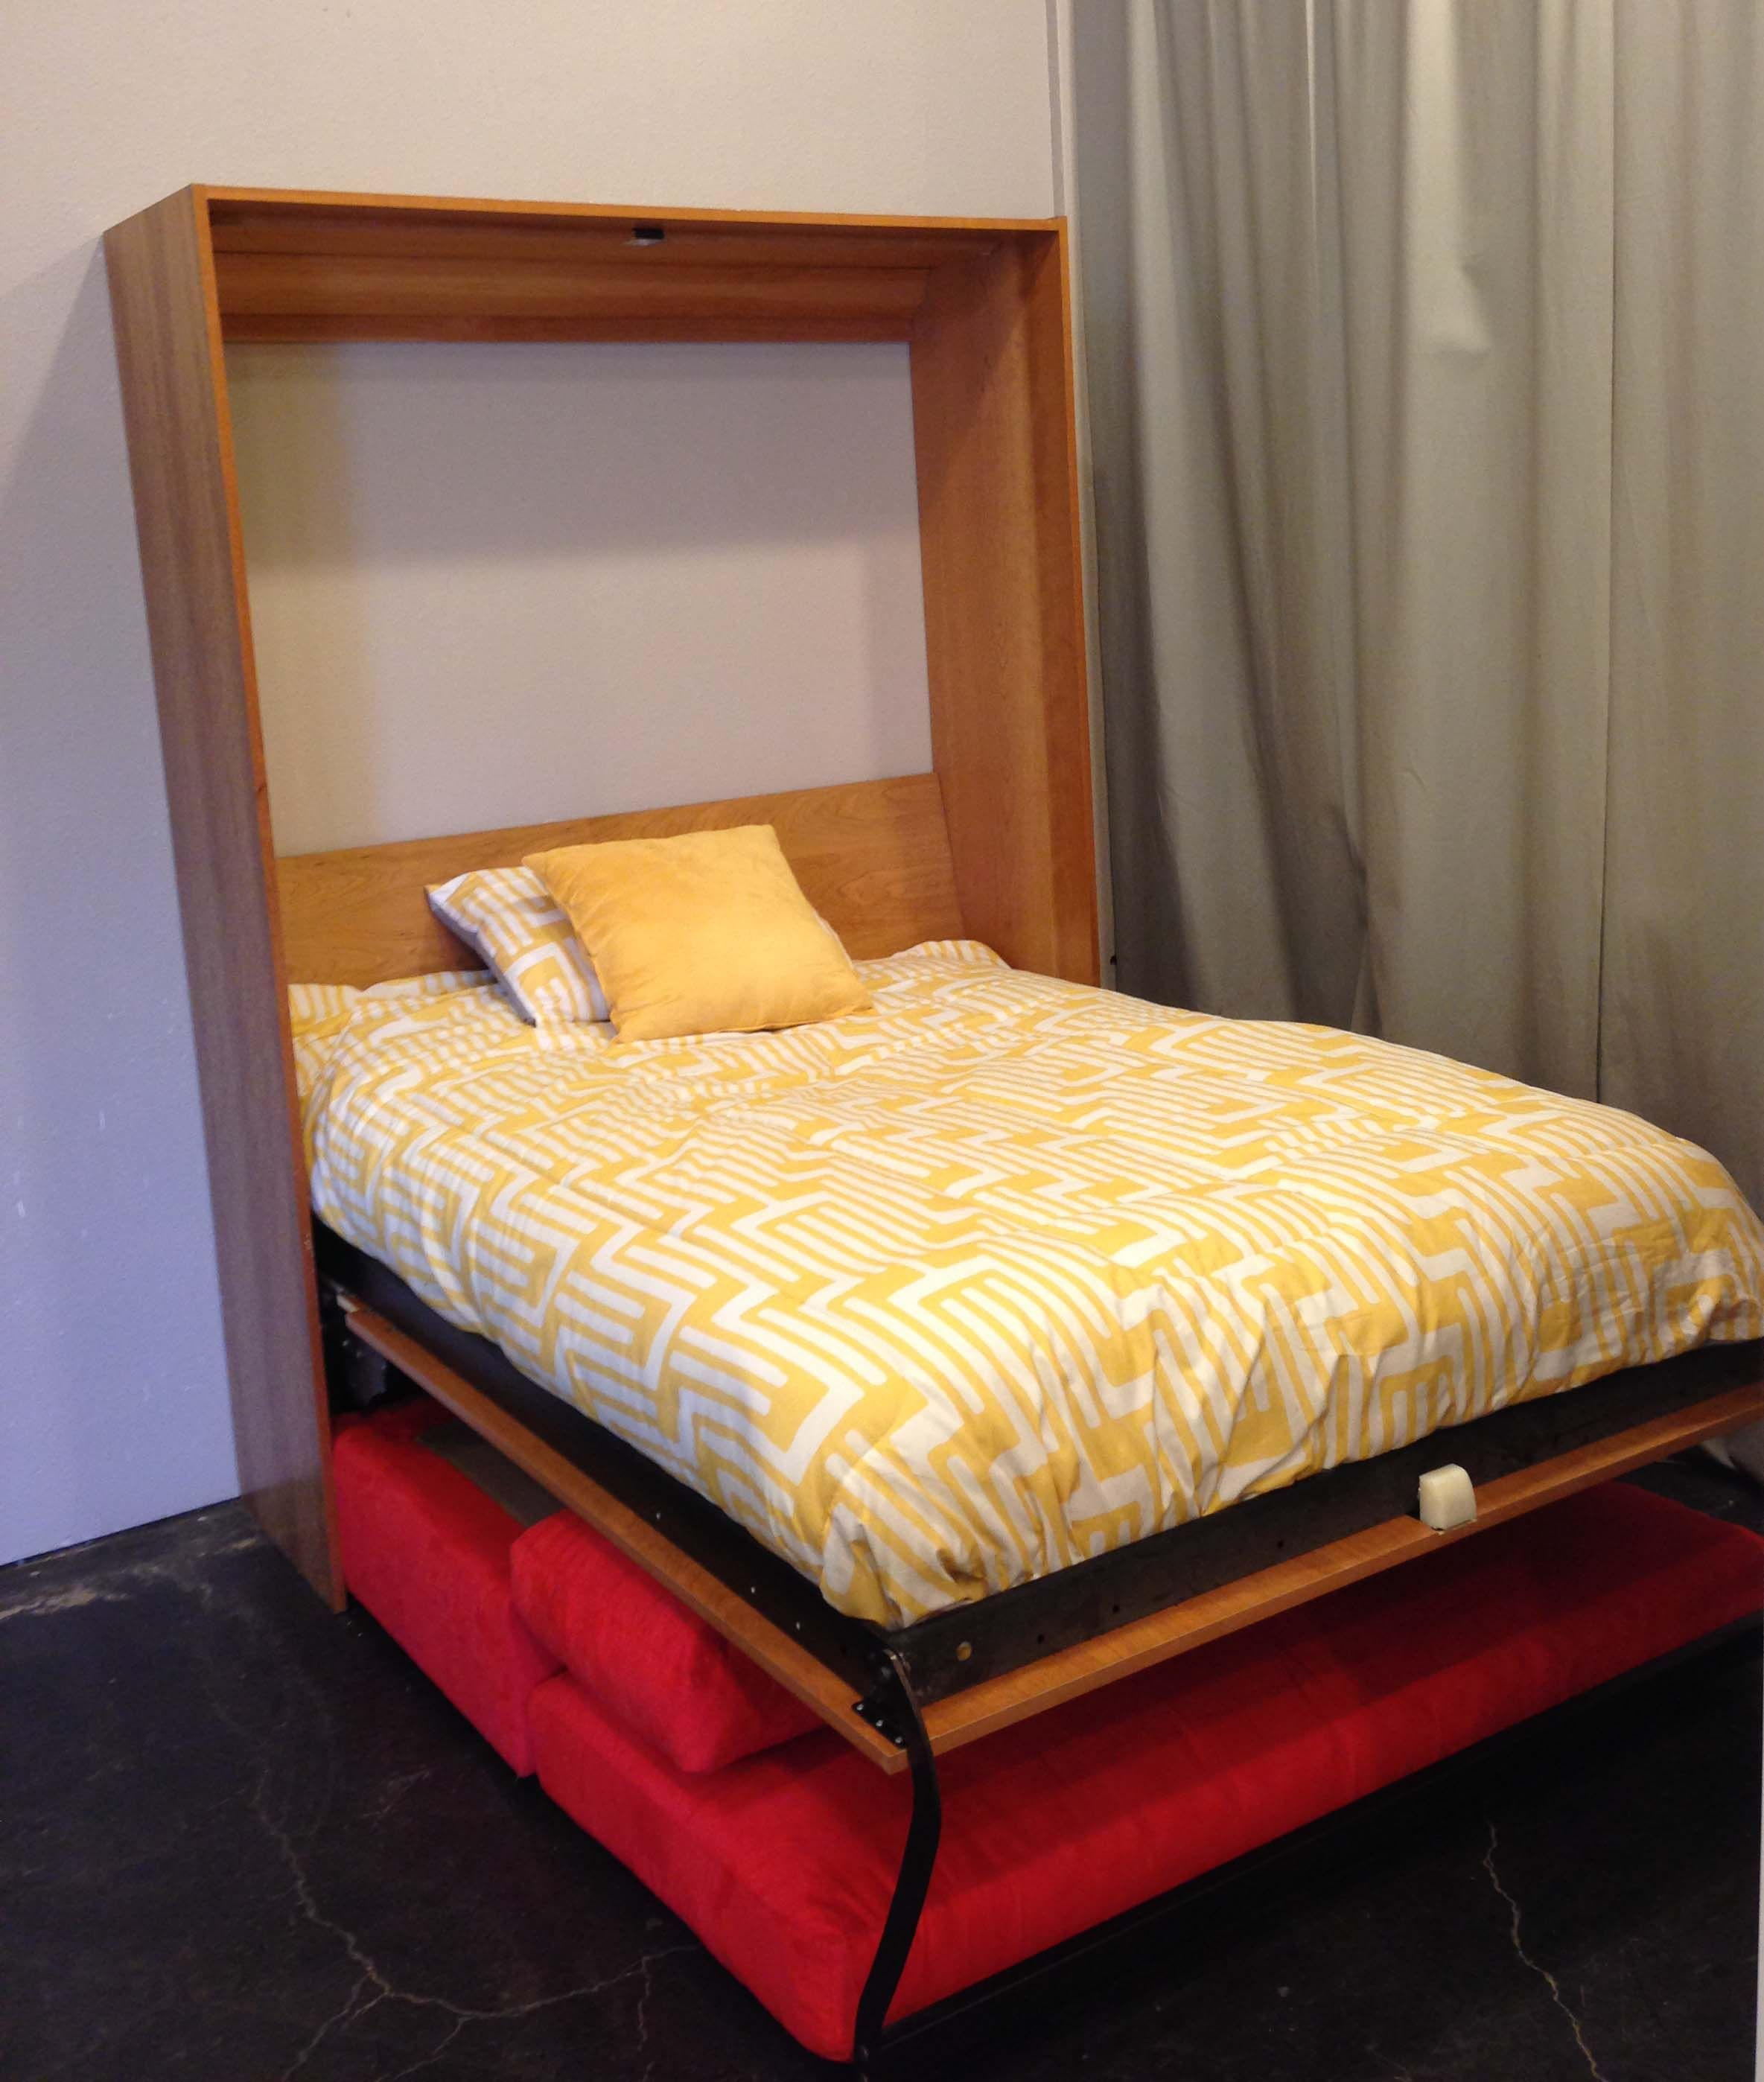 Murphy Beds And More Jupiter : Couch tucks neatly under the murphy bed when it is opened